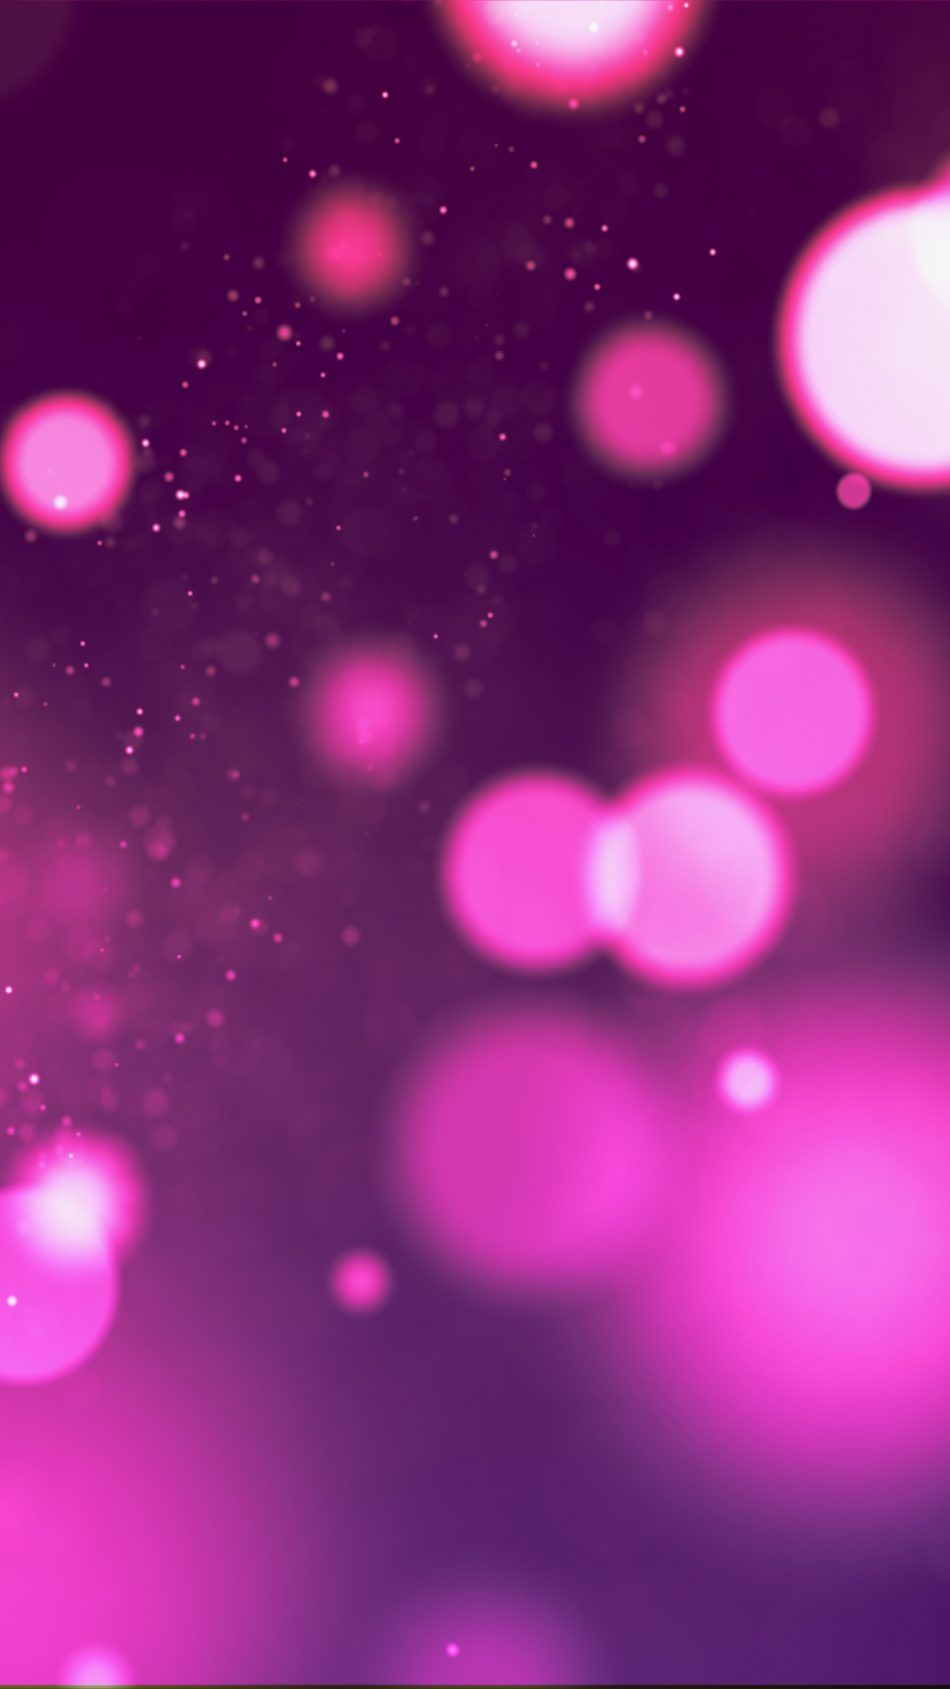 Bokeh Purple Pink Lights 4k Ultra Hd Mobile Wallpaper Bokeh Wallpaper Glitter Phone Wallpaper Pink Wallpaper Mobile